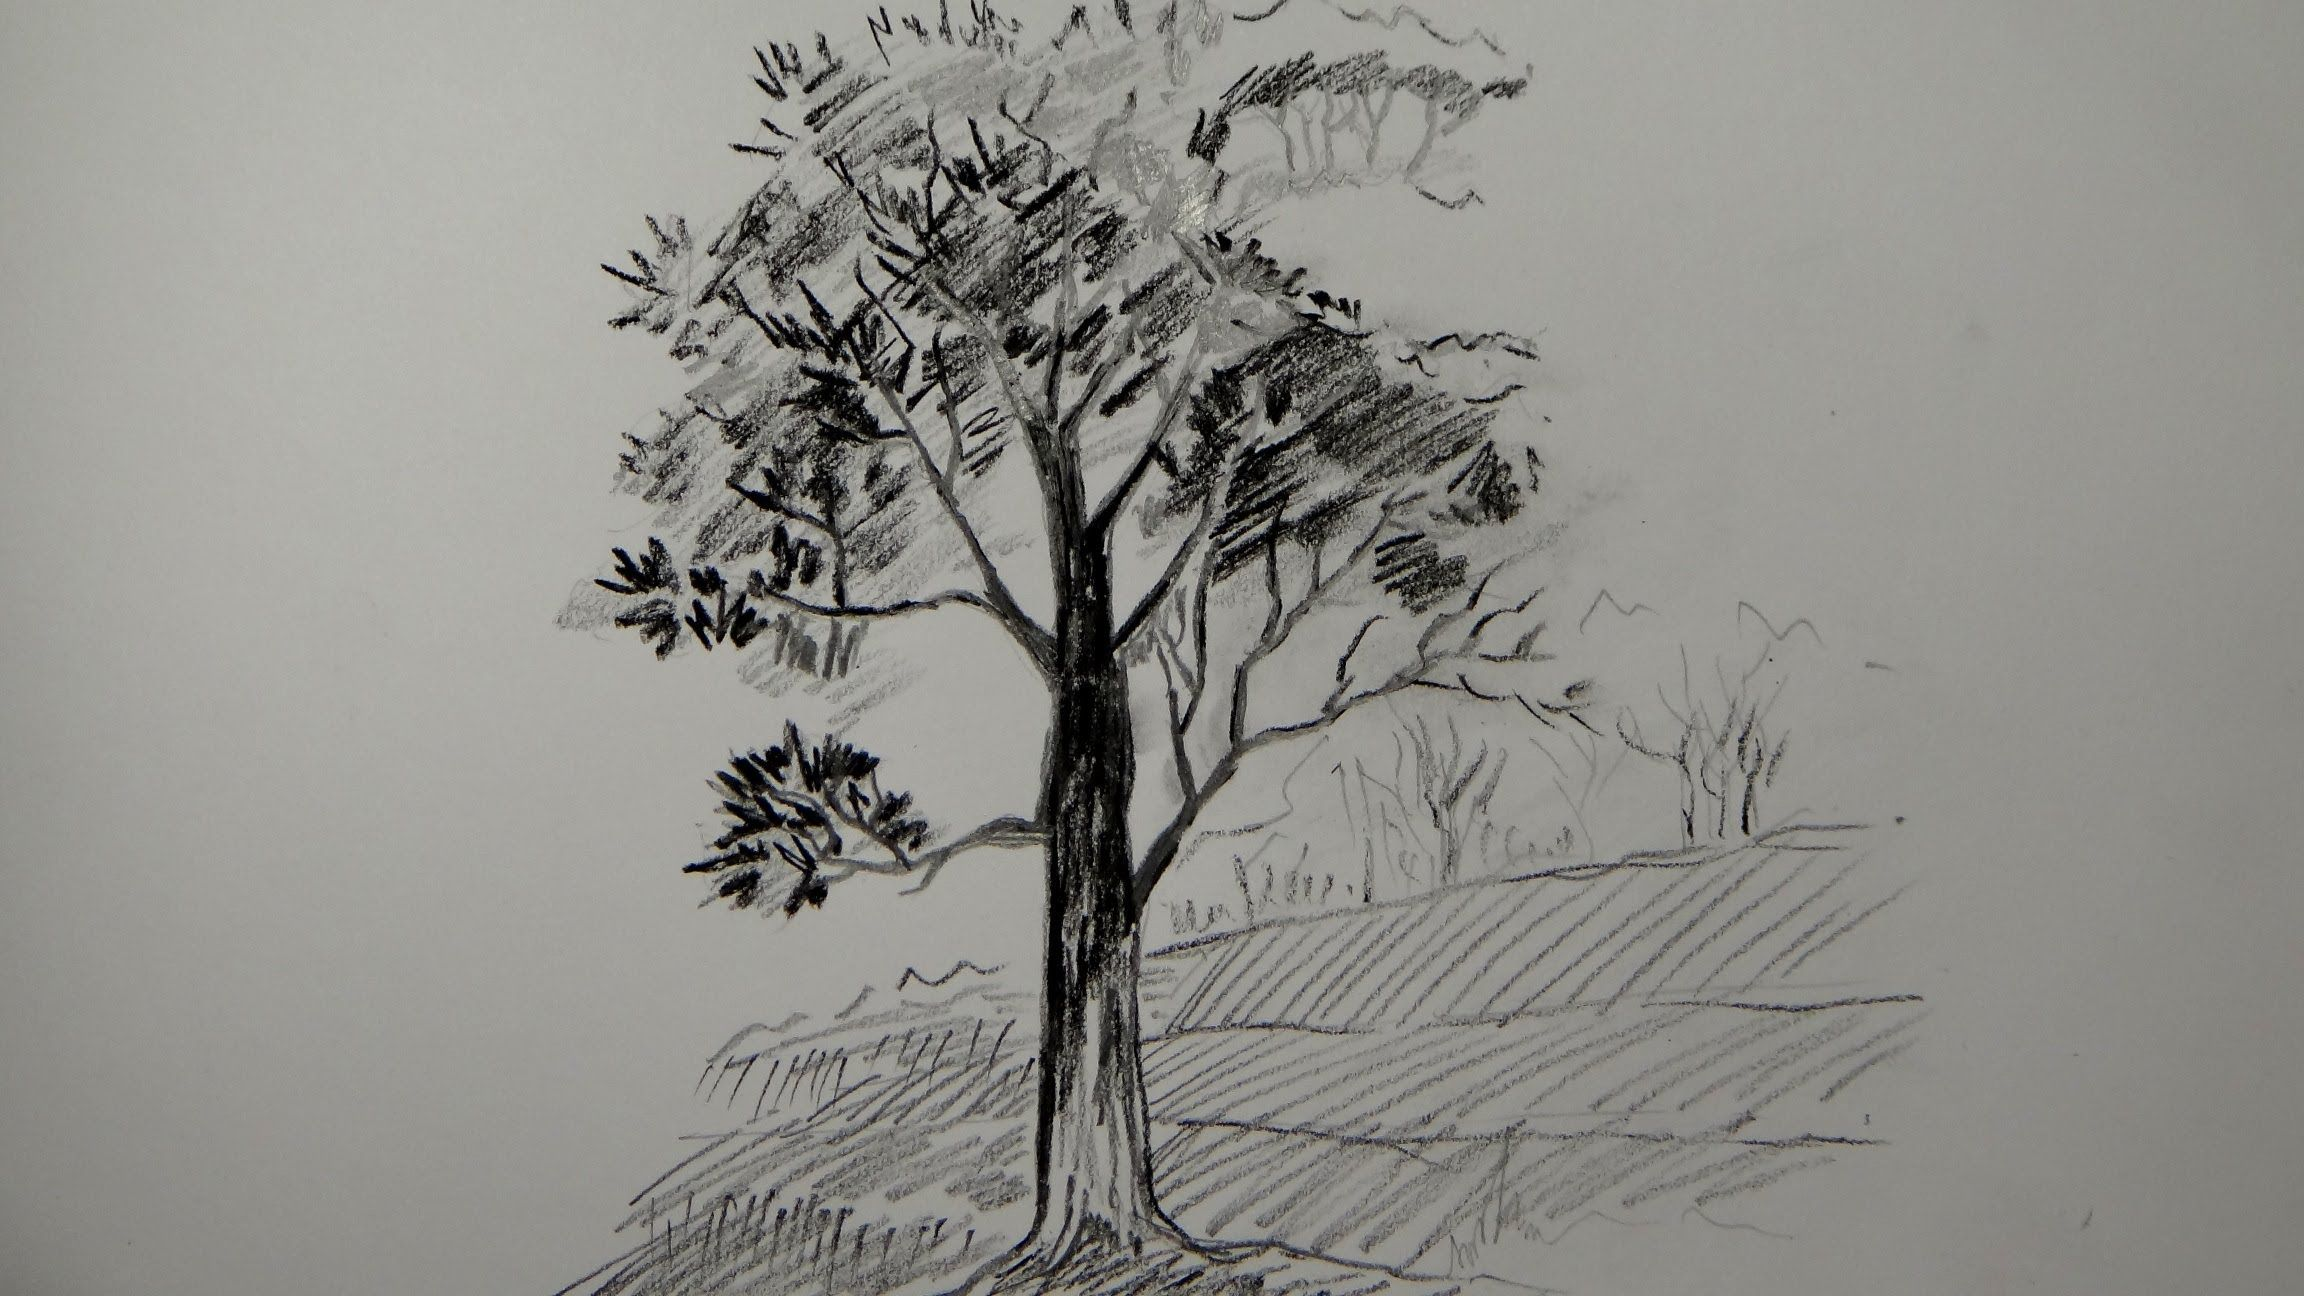 How to draw a tree using pencil (a simple tree) | Painting ... | 2304 x 1296 jpeg 309kB